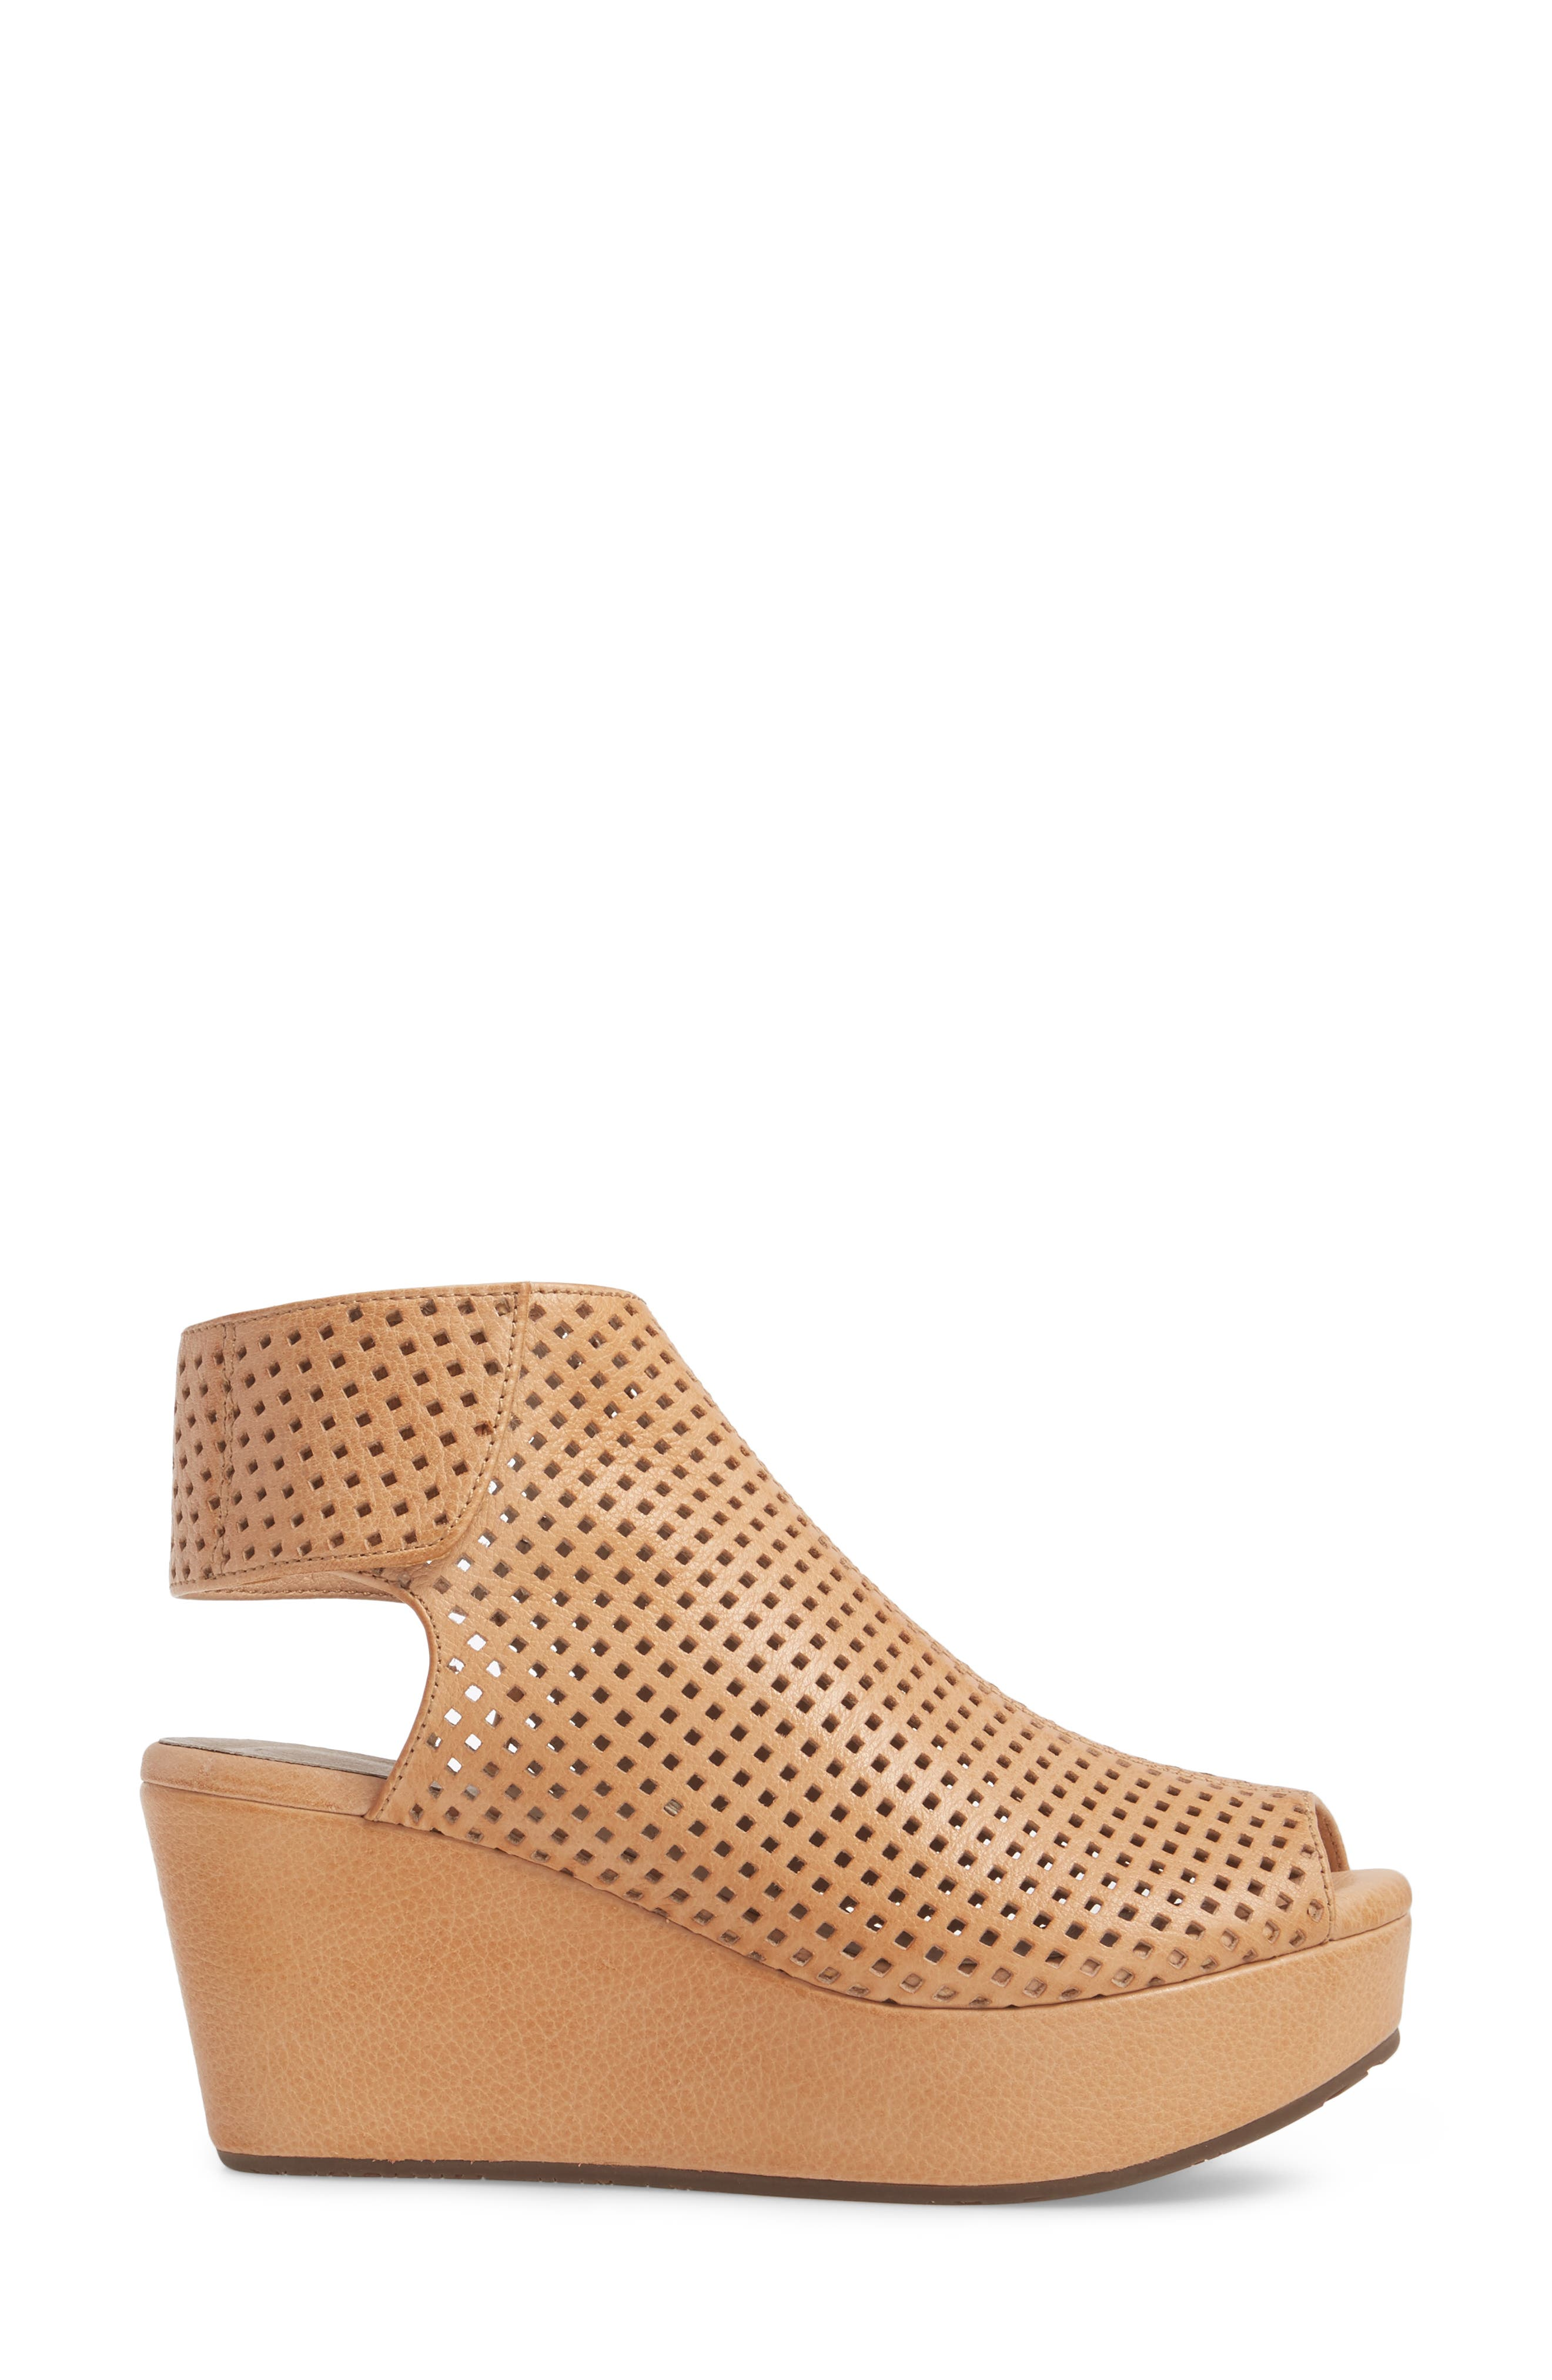 Wing Perforated Platform Wedge,                             Alternate thumbnail 3, color,                             200